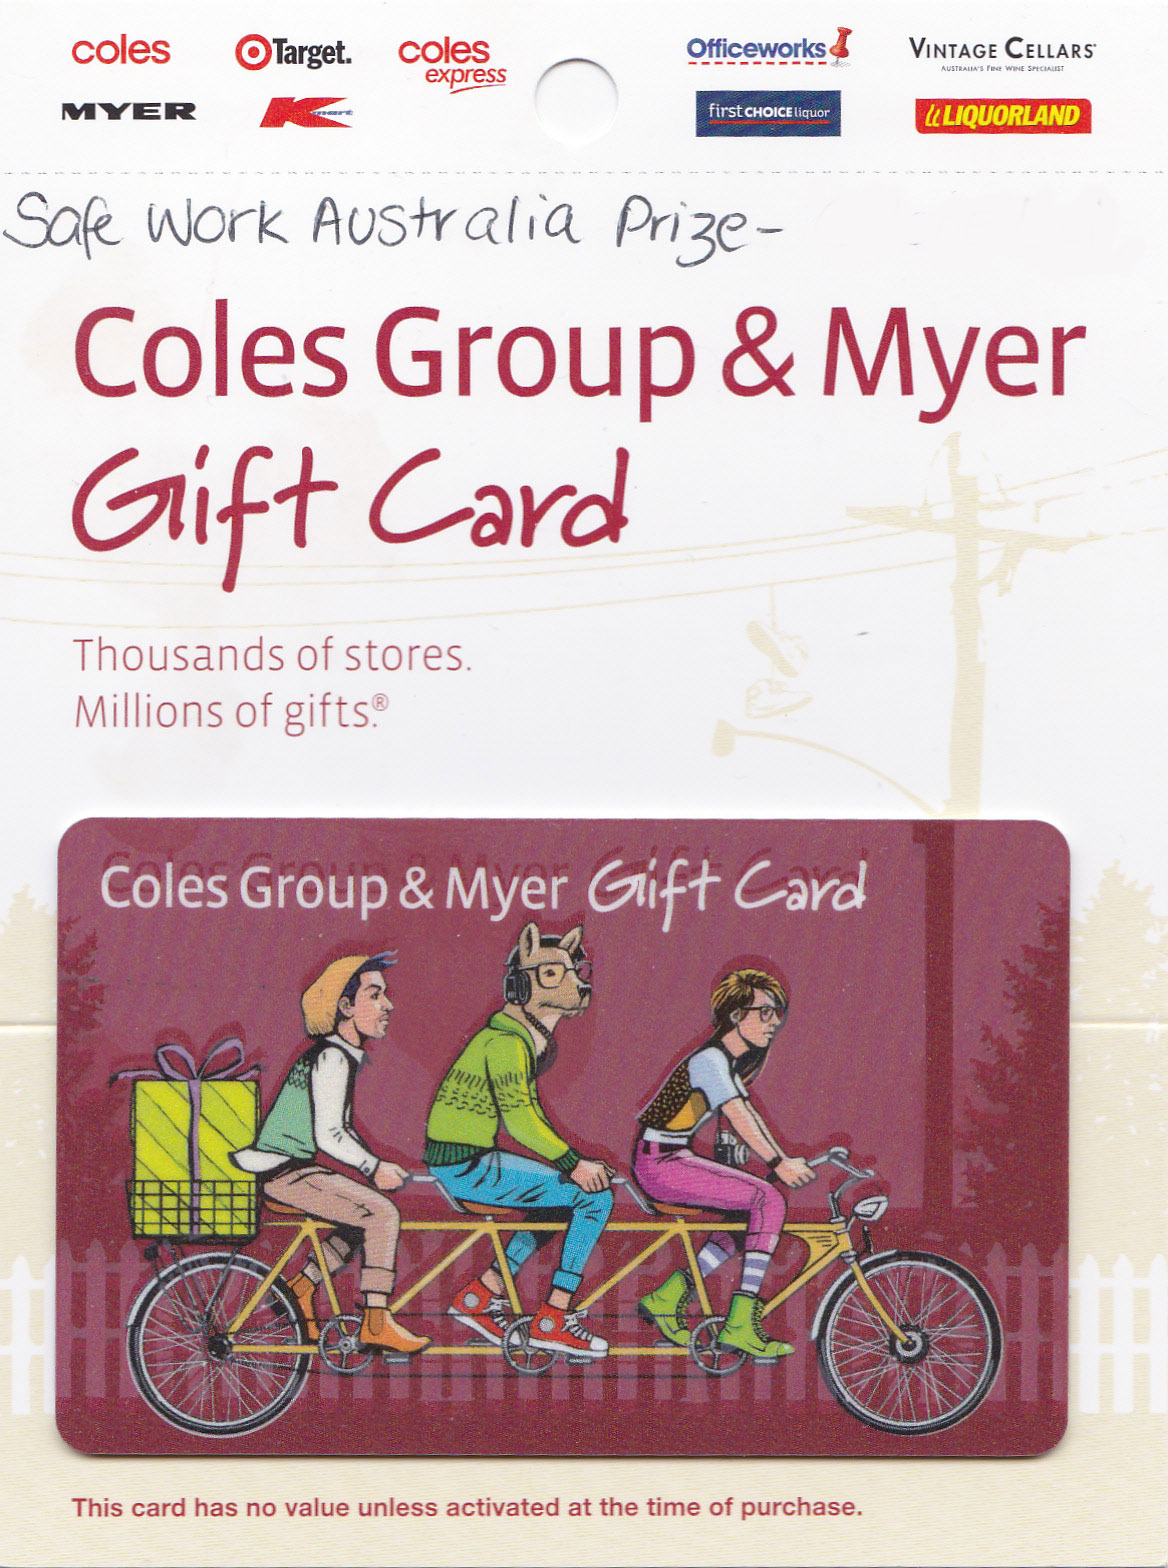 Best buy gift card mall discount, myer target gift cards expire